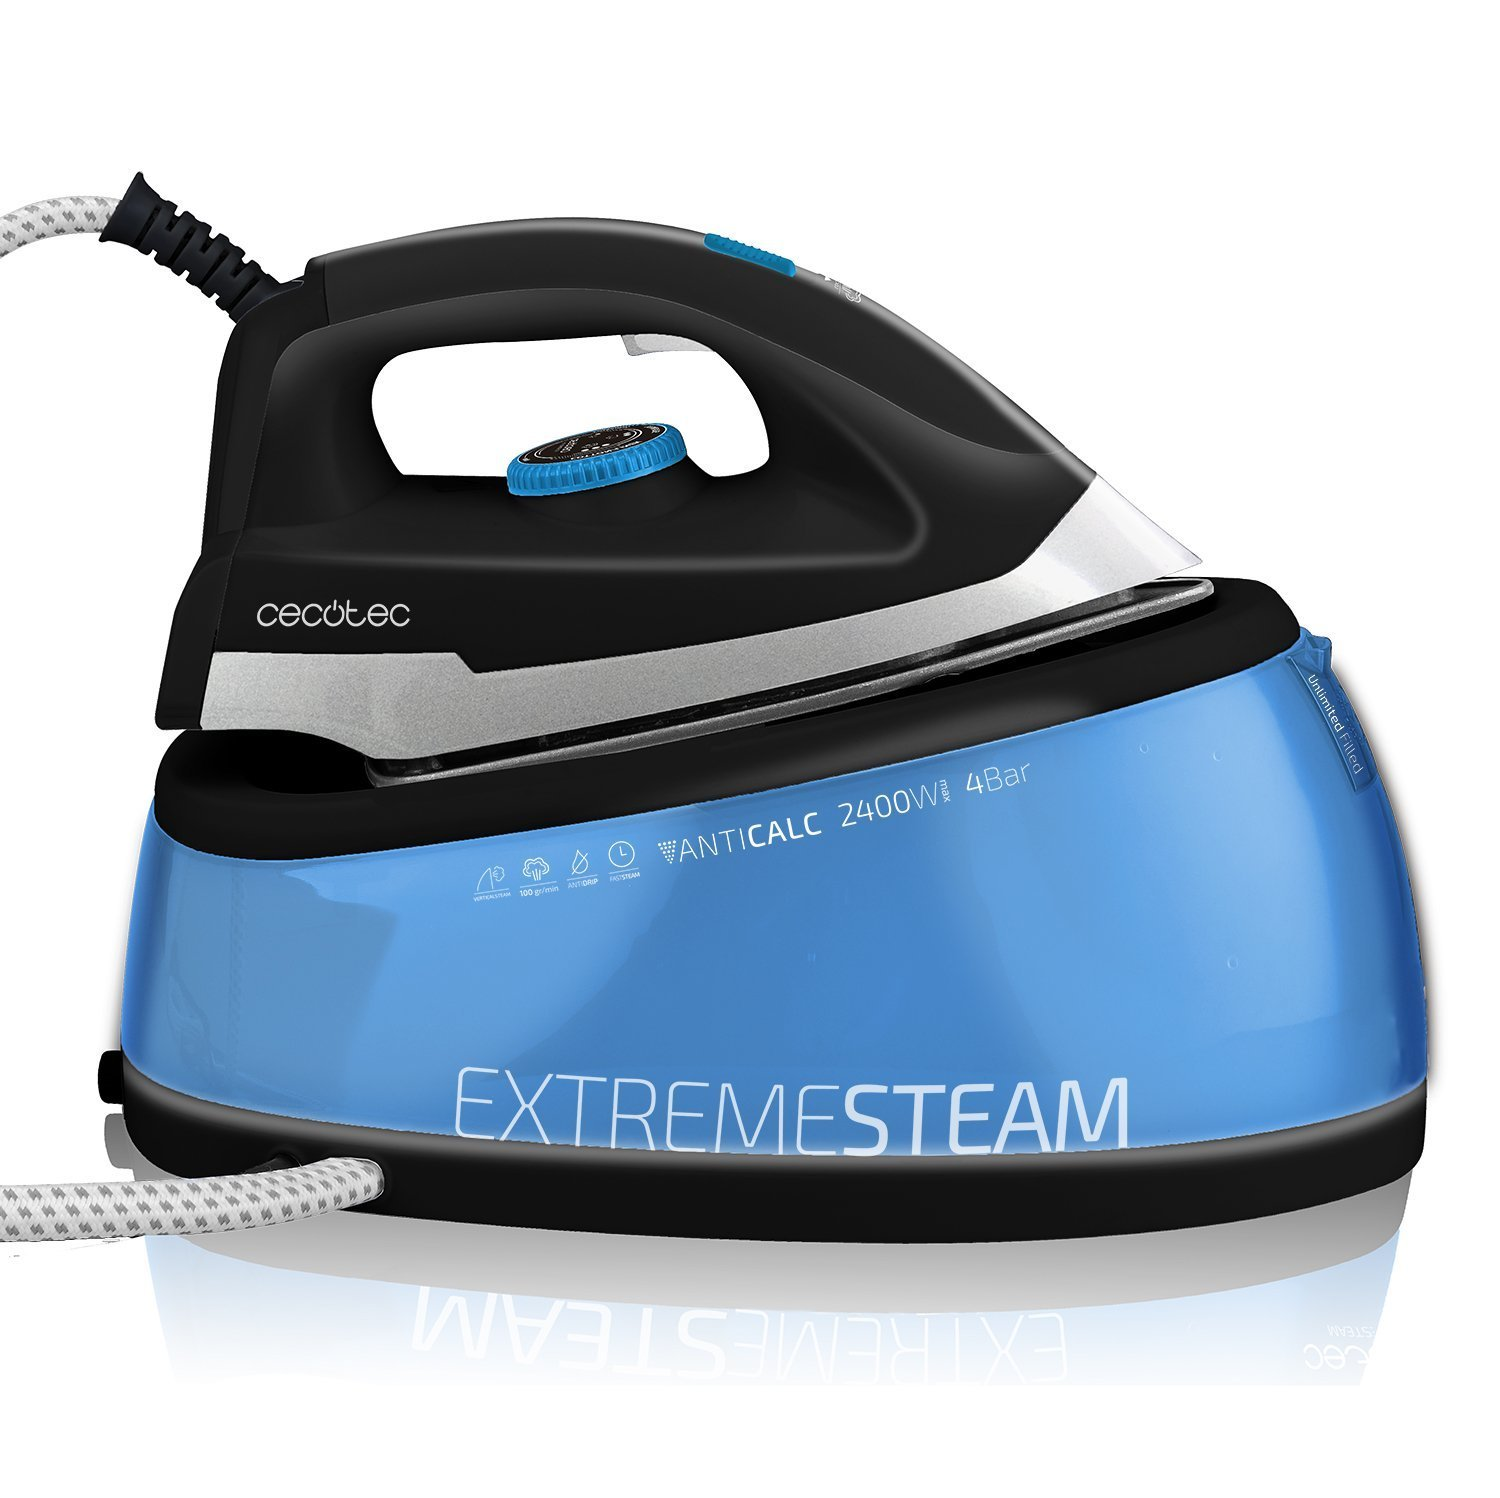 Steam Generator Iron. Unlimited Autonomy. Detachable Anti-Scale Filter. ECO Mode. Continuous Steam 120 g/min. TitaniumSlide Soleplate. 2 l Container. Precision Tip. Adjustable Temperature. Vertical Steam. Light and Compact. Cable 360º Cord. Auto-Clean Sys